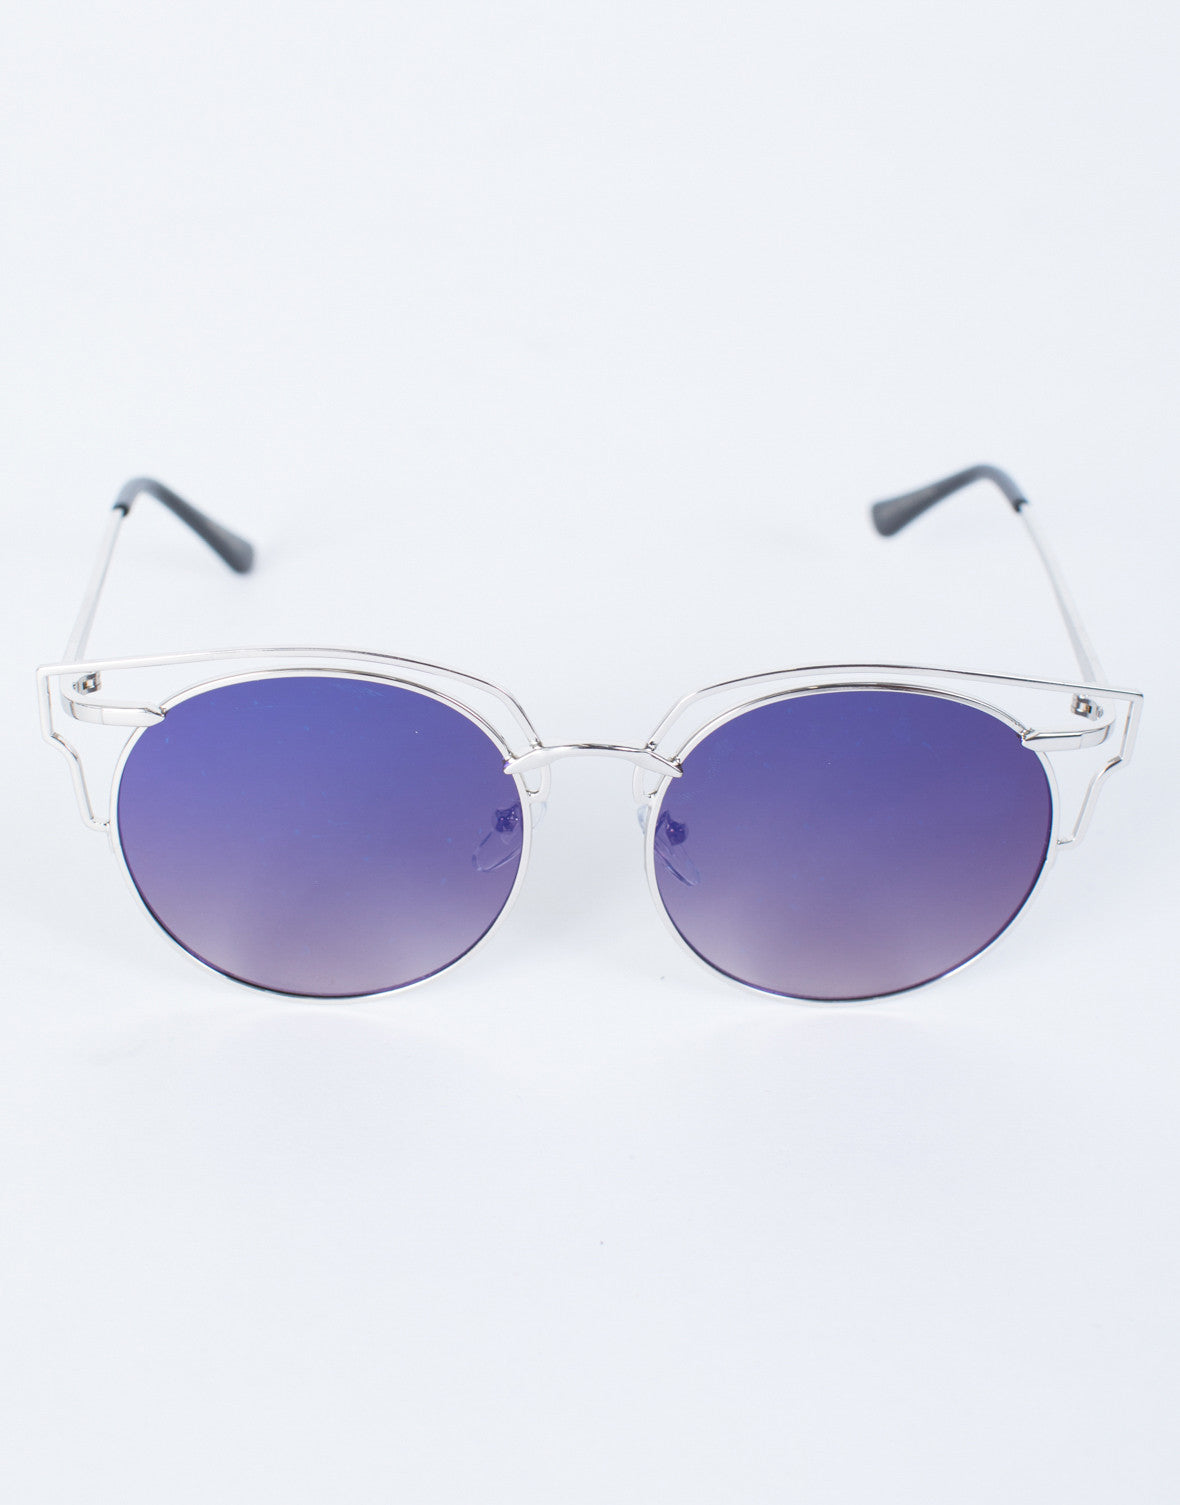 Purple/Silver Weekend Vibes Sunnies - Top View